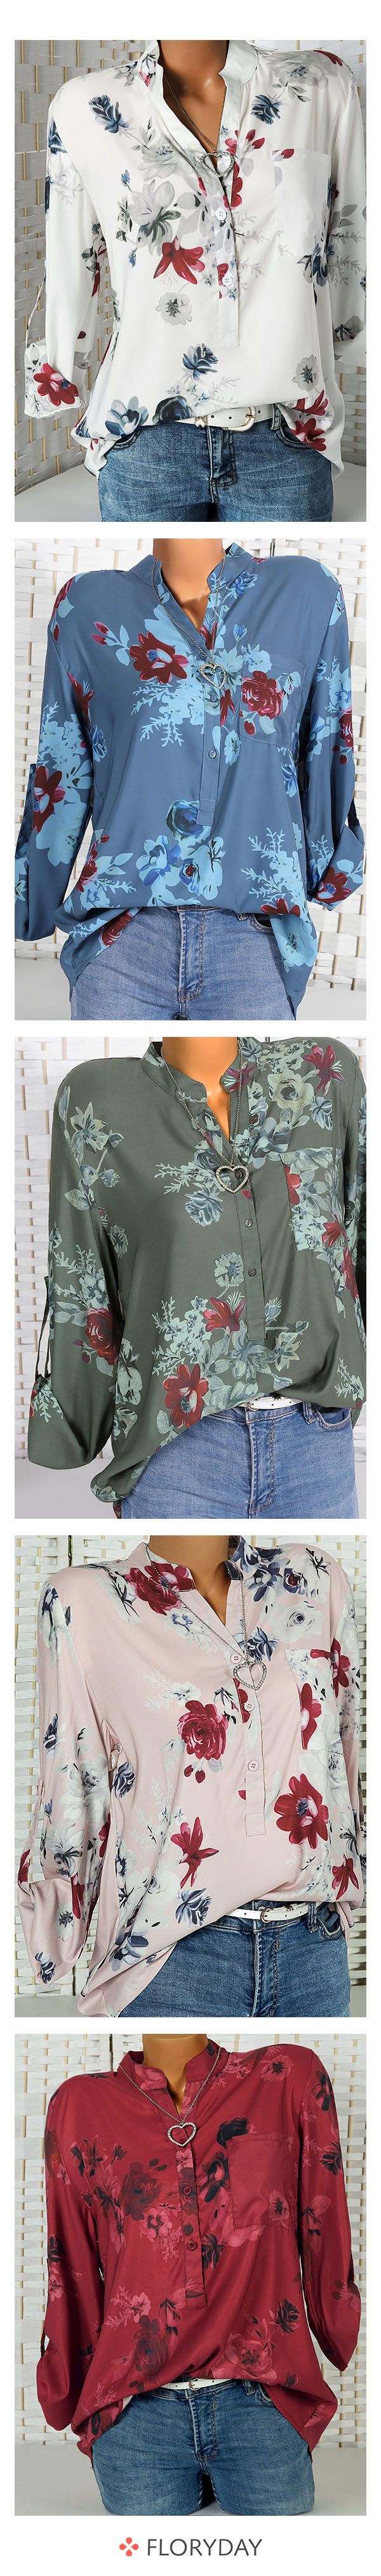 Photo of Long-sleeved blouses with a floral pattern and stand-up collar